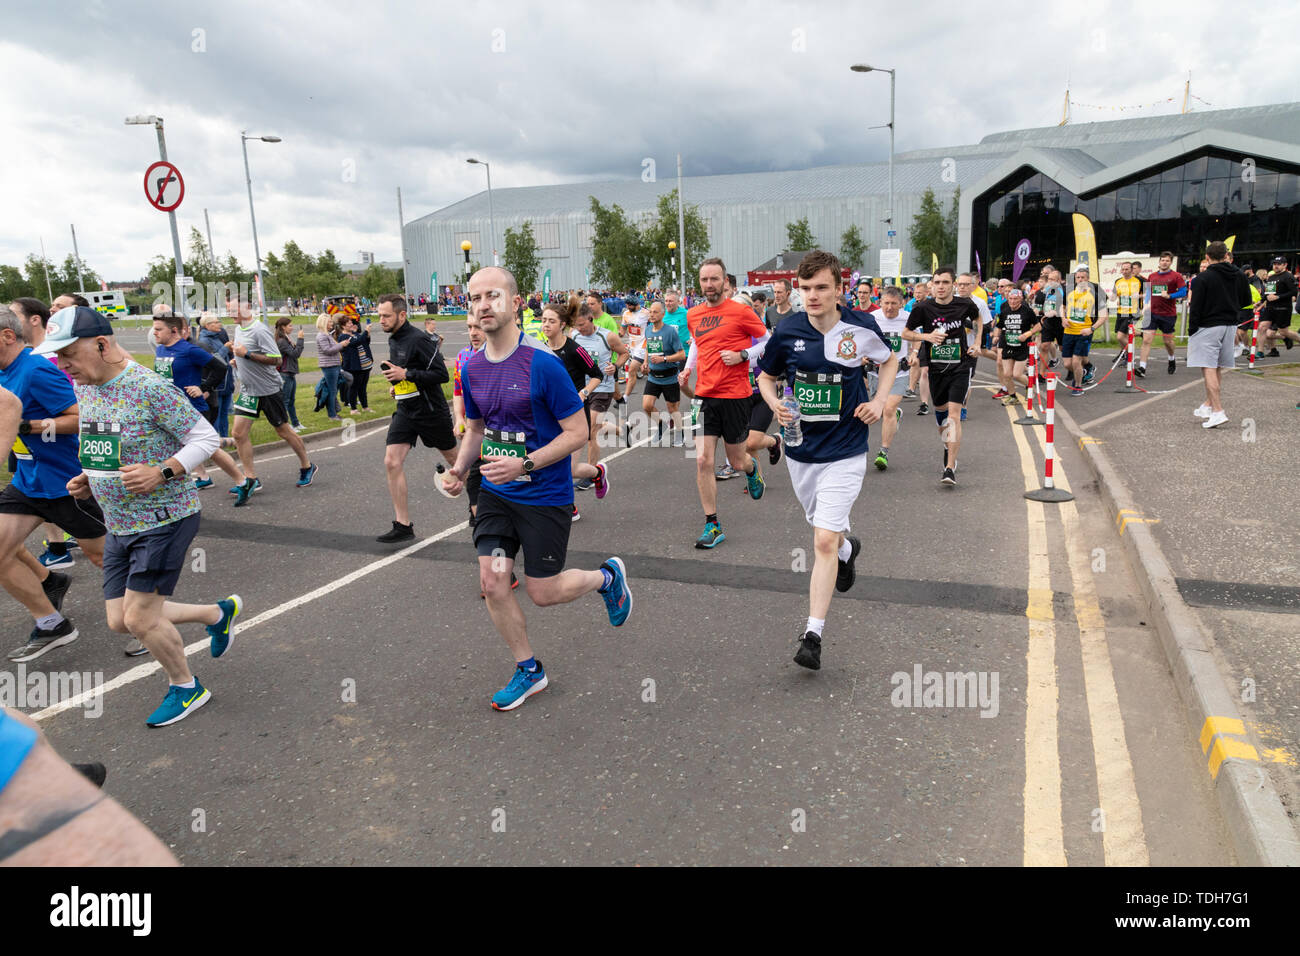 Glasgow, UK. 16th June 2019. The Men's 10K sets off from the riverside museum on Glasgow's Clydeside. Thousands of runners take part in this year's event which has been running since 2004.  It is hoped that the event will promote health and wellbeing amongst men in the west of Scotland. Credit: Garry Cornes/Alamy Live News - Stock Image